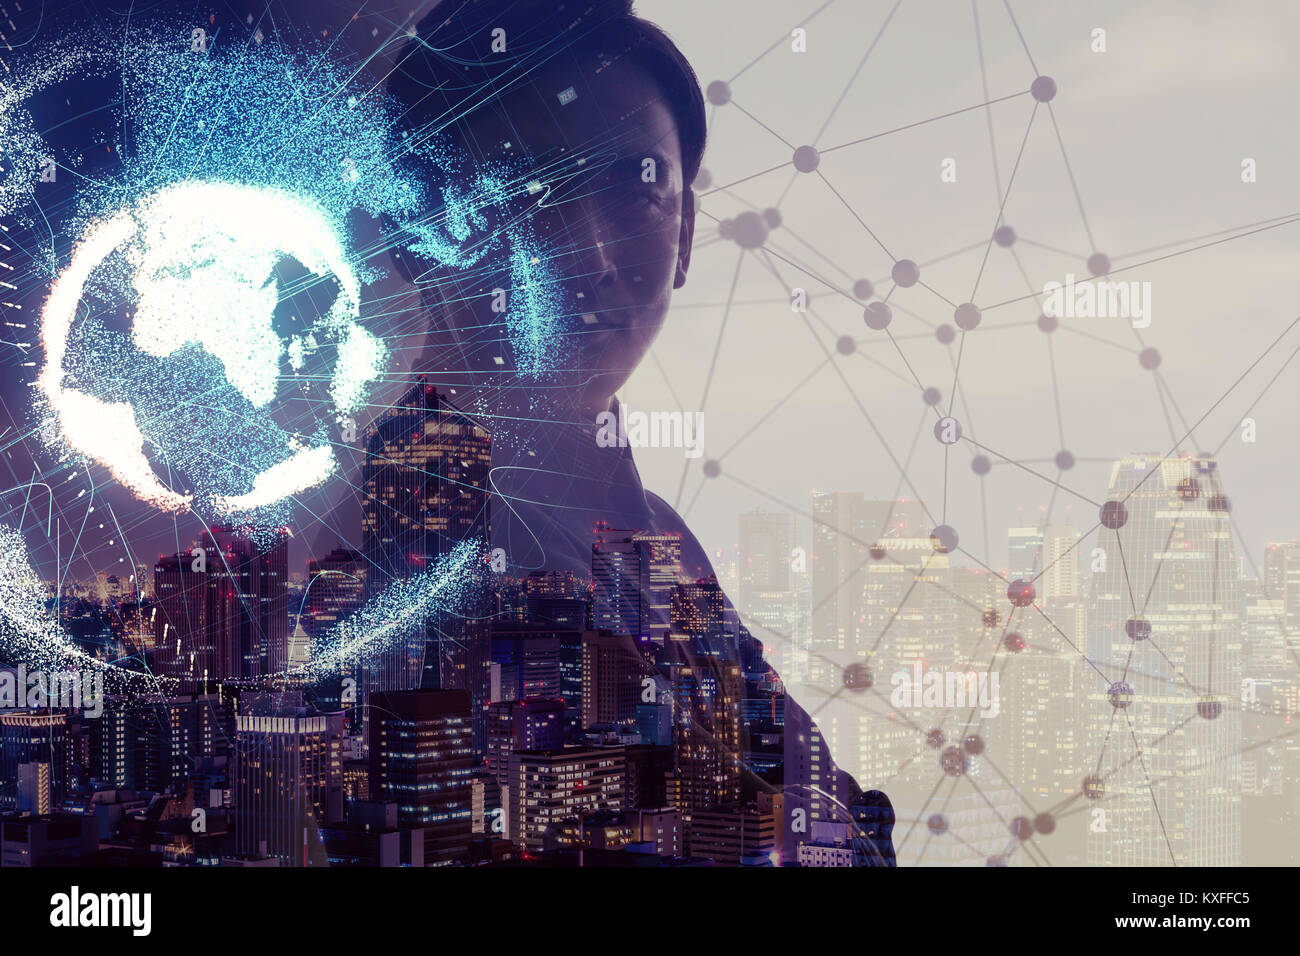 Global network concept. Internet of Things. Artificial Intelligence. - Stock Image